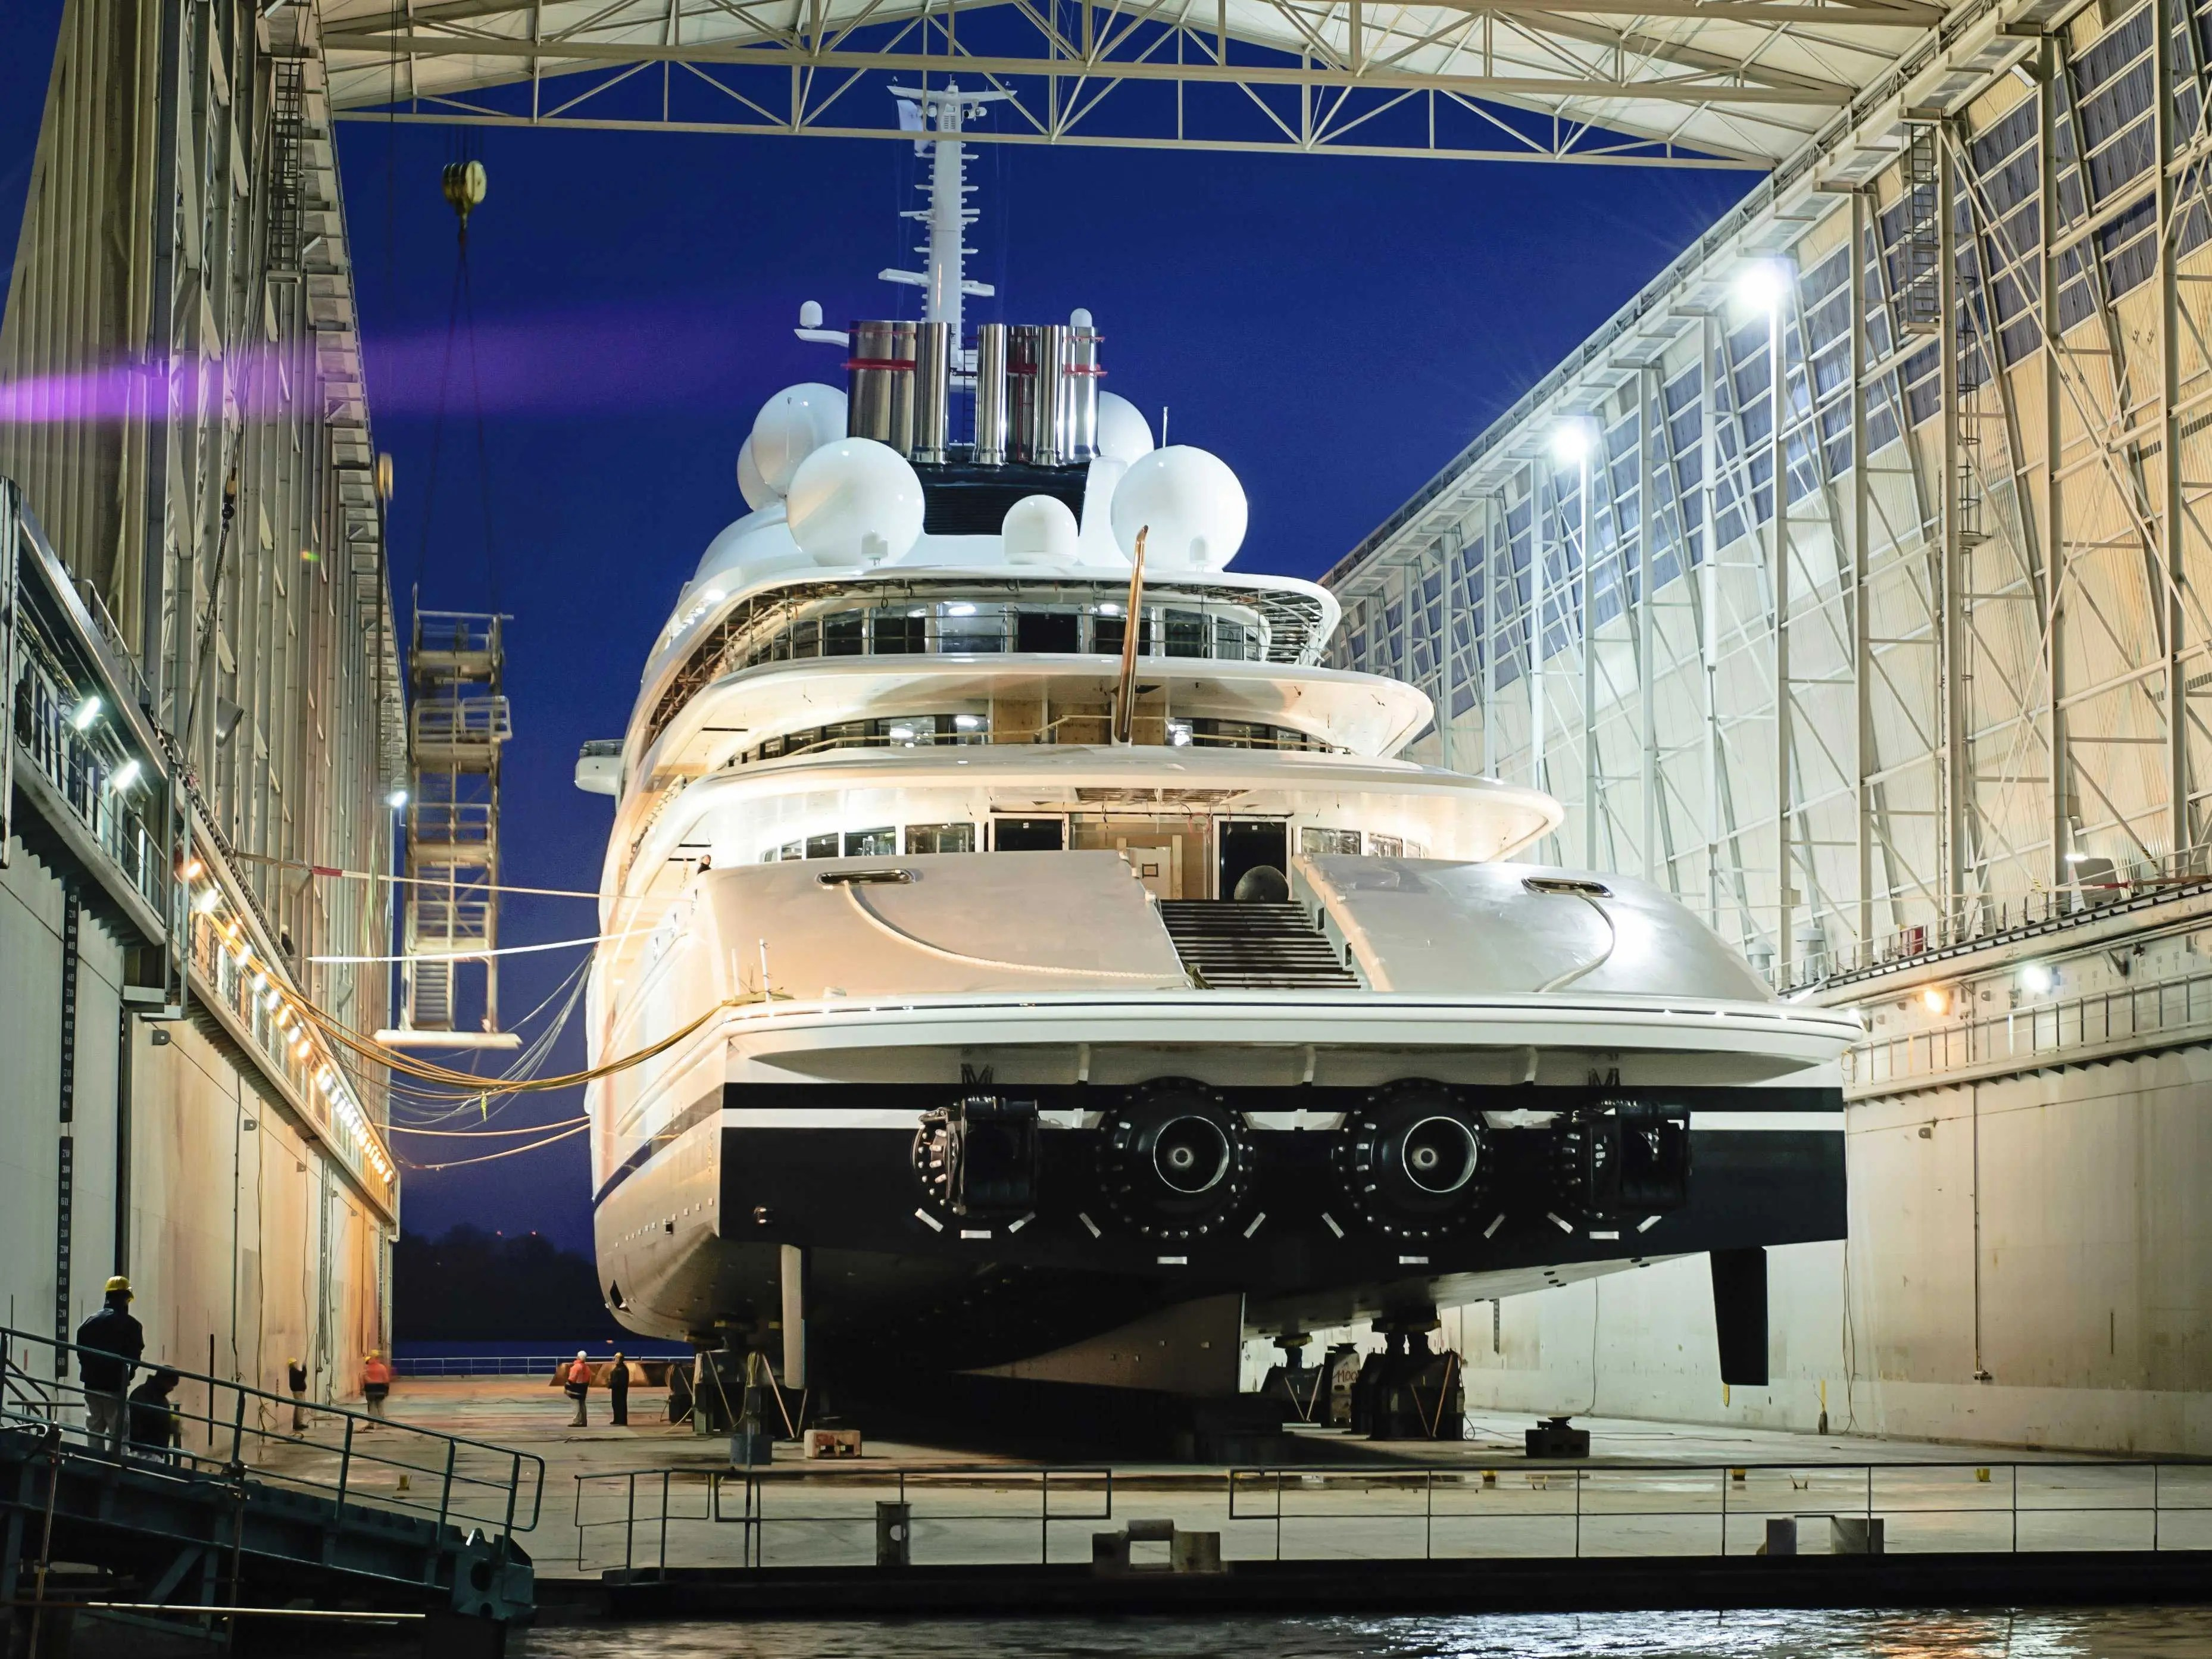 The UAE Presidents New Megayacht Is An Absolute Monster